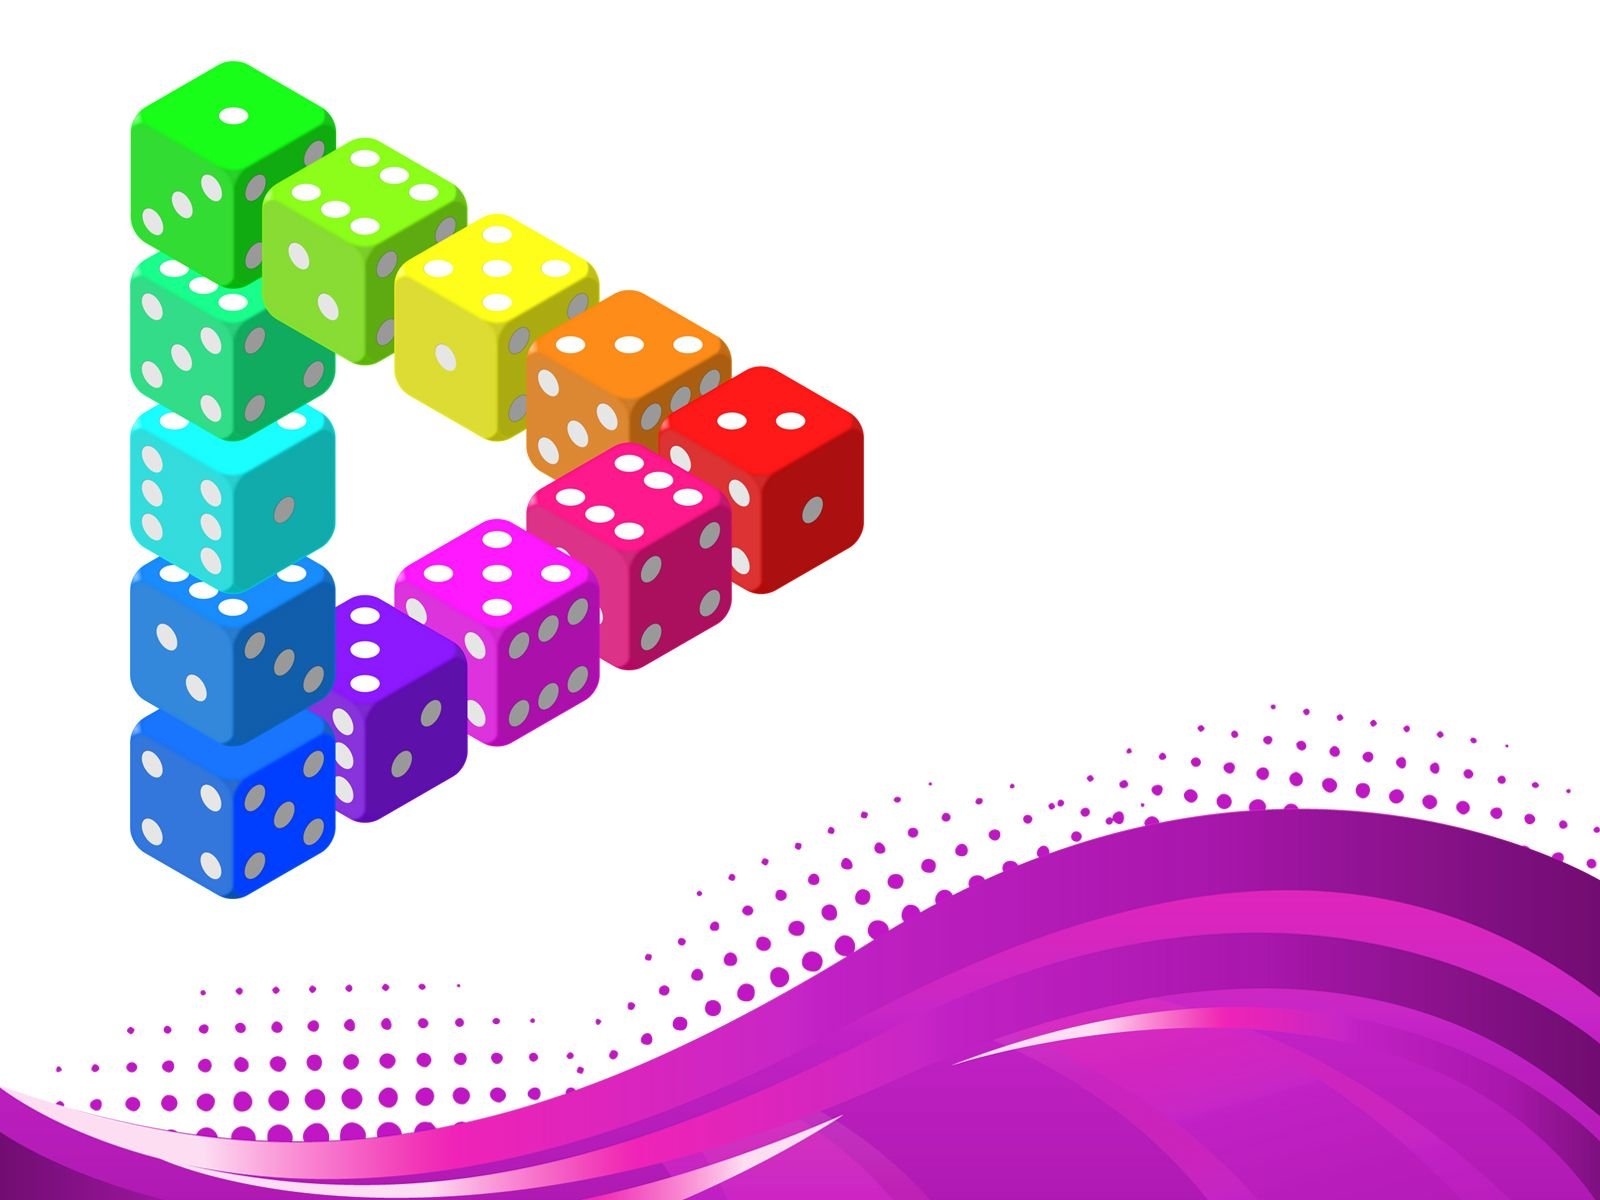 Download free 3d dice powerpoint templates containing dices with microsoft powerpoint 2007 download free 3d dice powerpoint templates containing dices with multi color in the slide design and alramifo Images